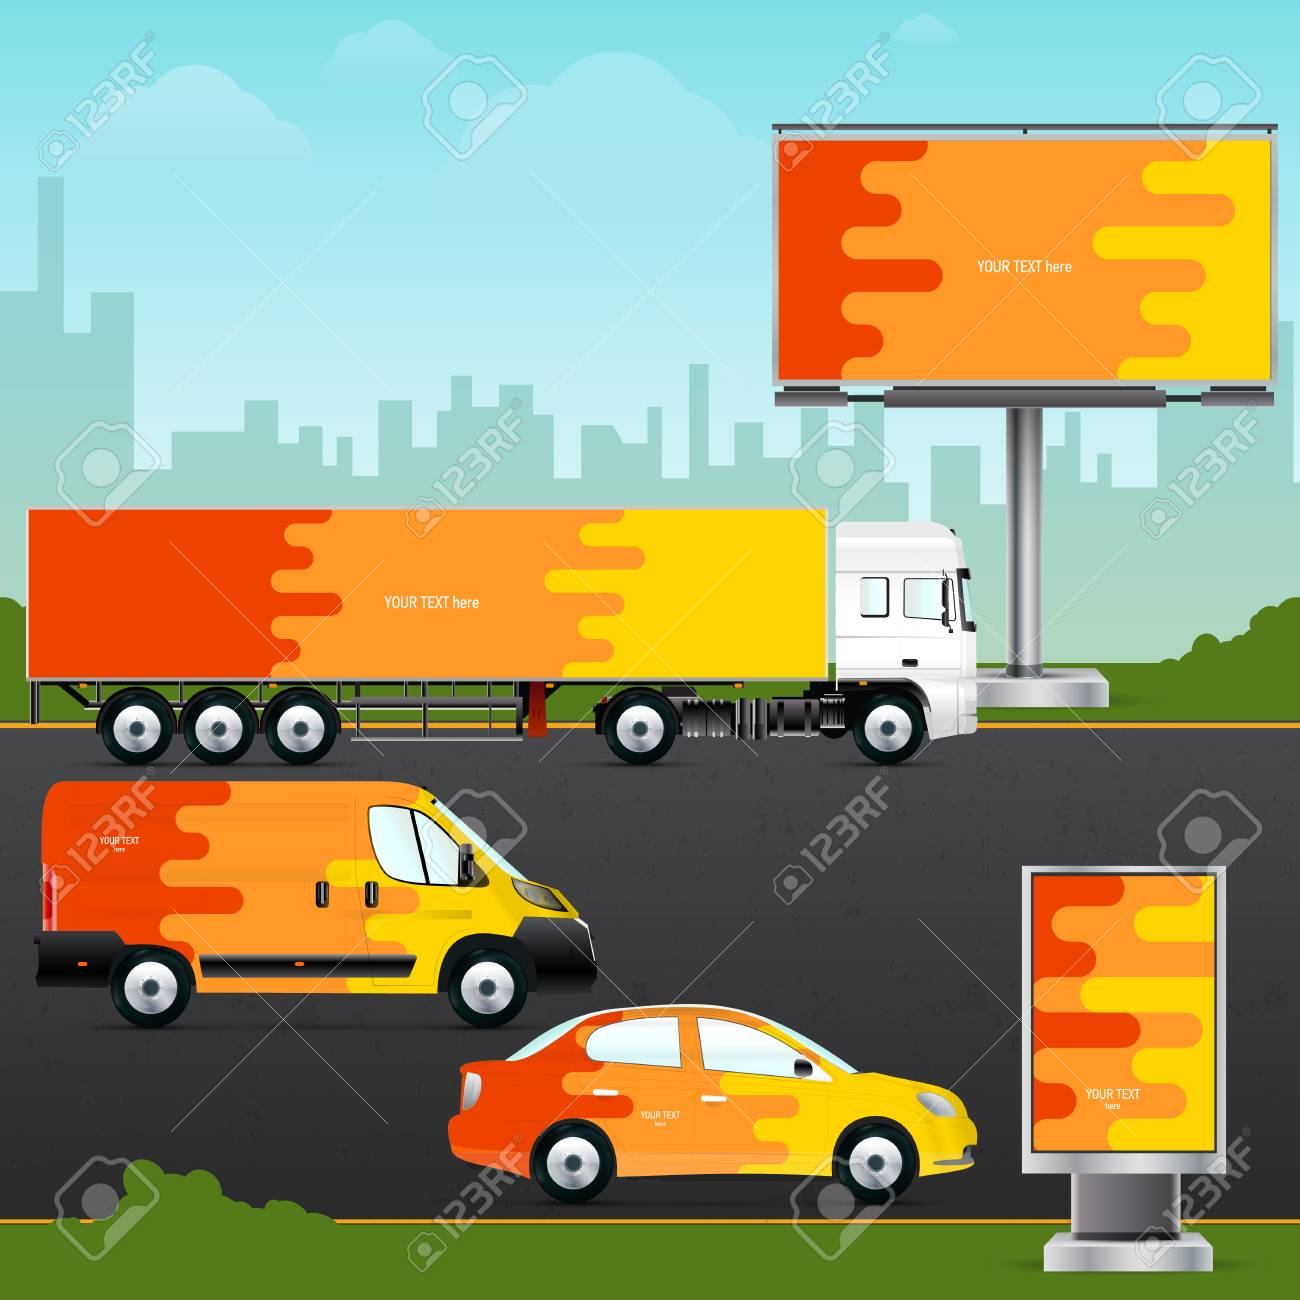 Template vehicle, outdoor advertising or corporate identity